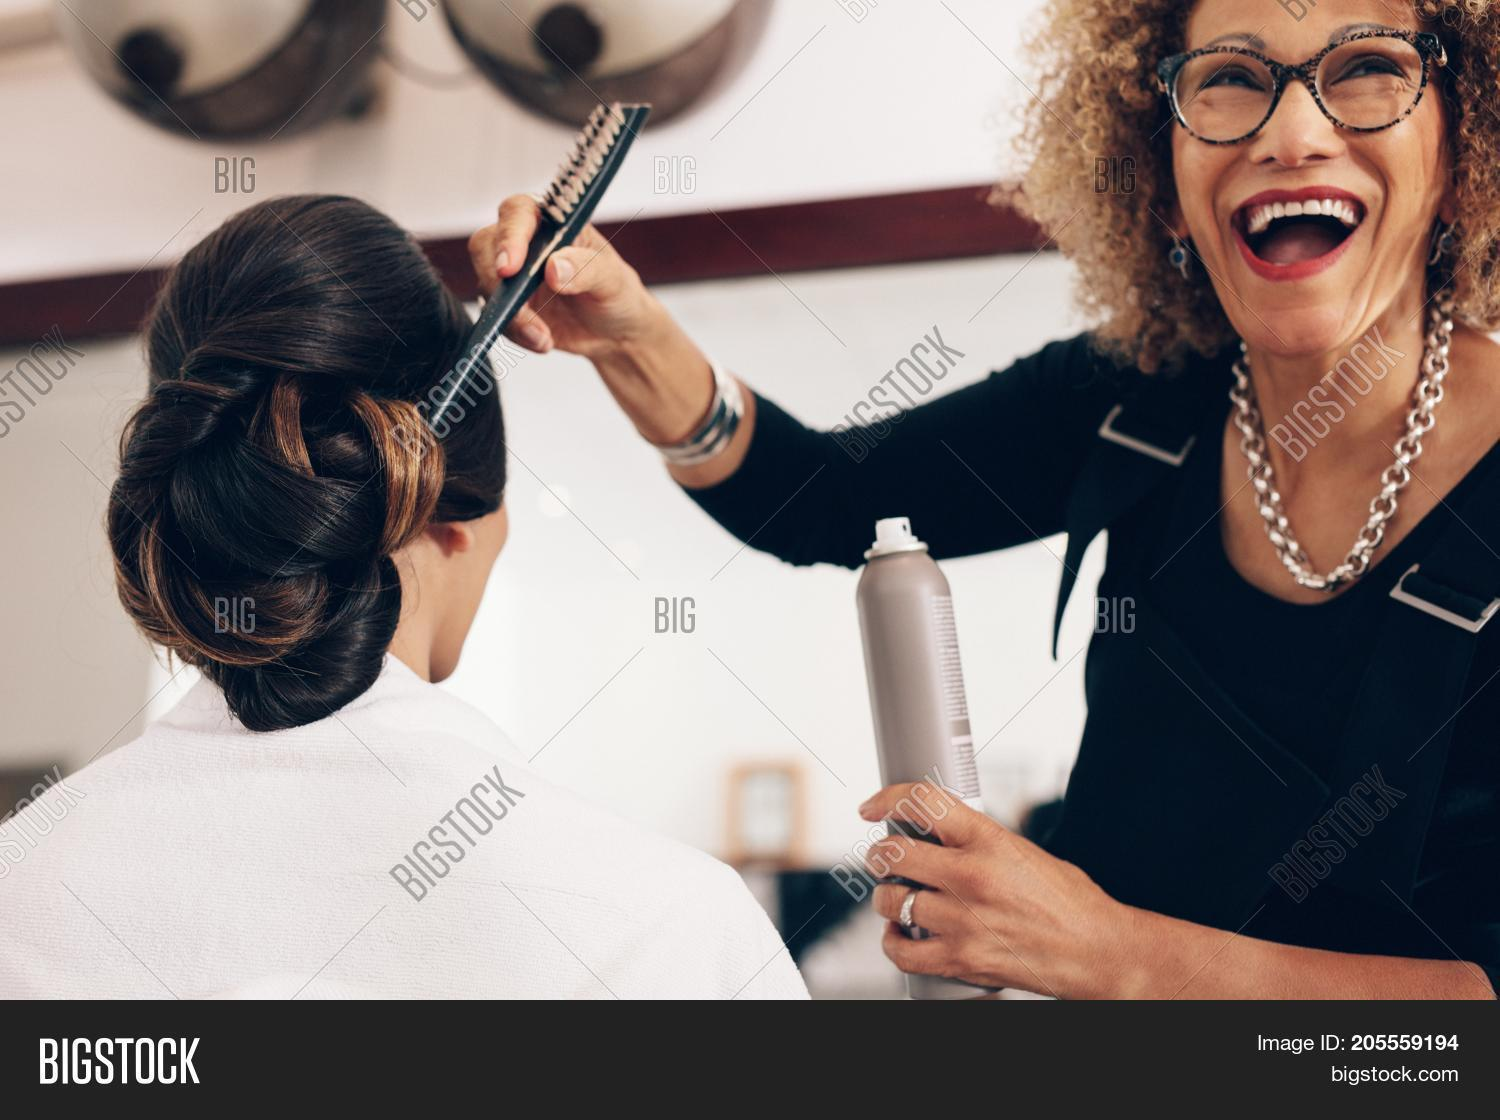 Salon Senior Senior Woman Image Photo Free Trial Bigstock